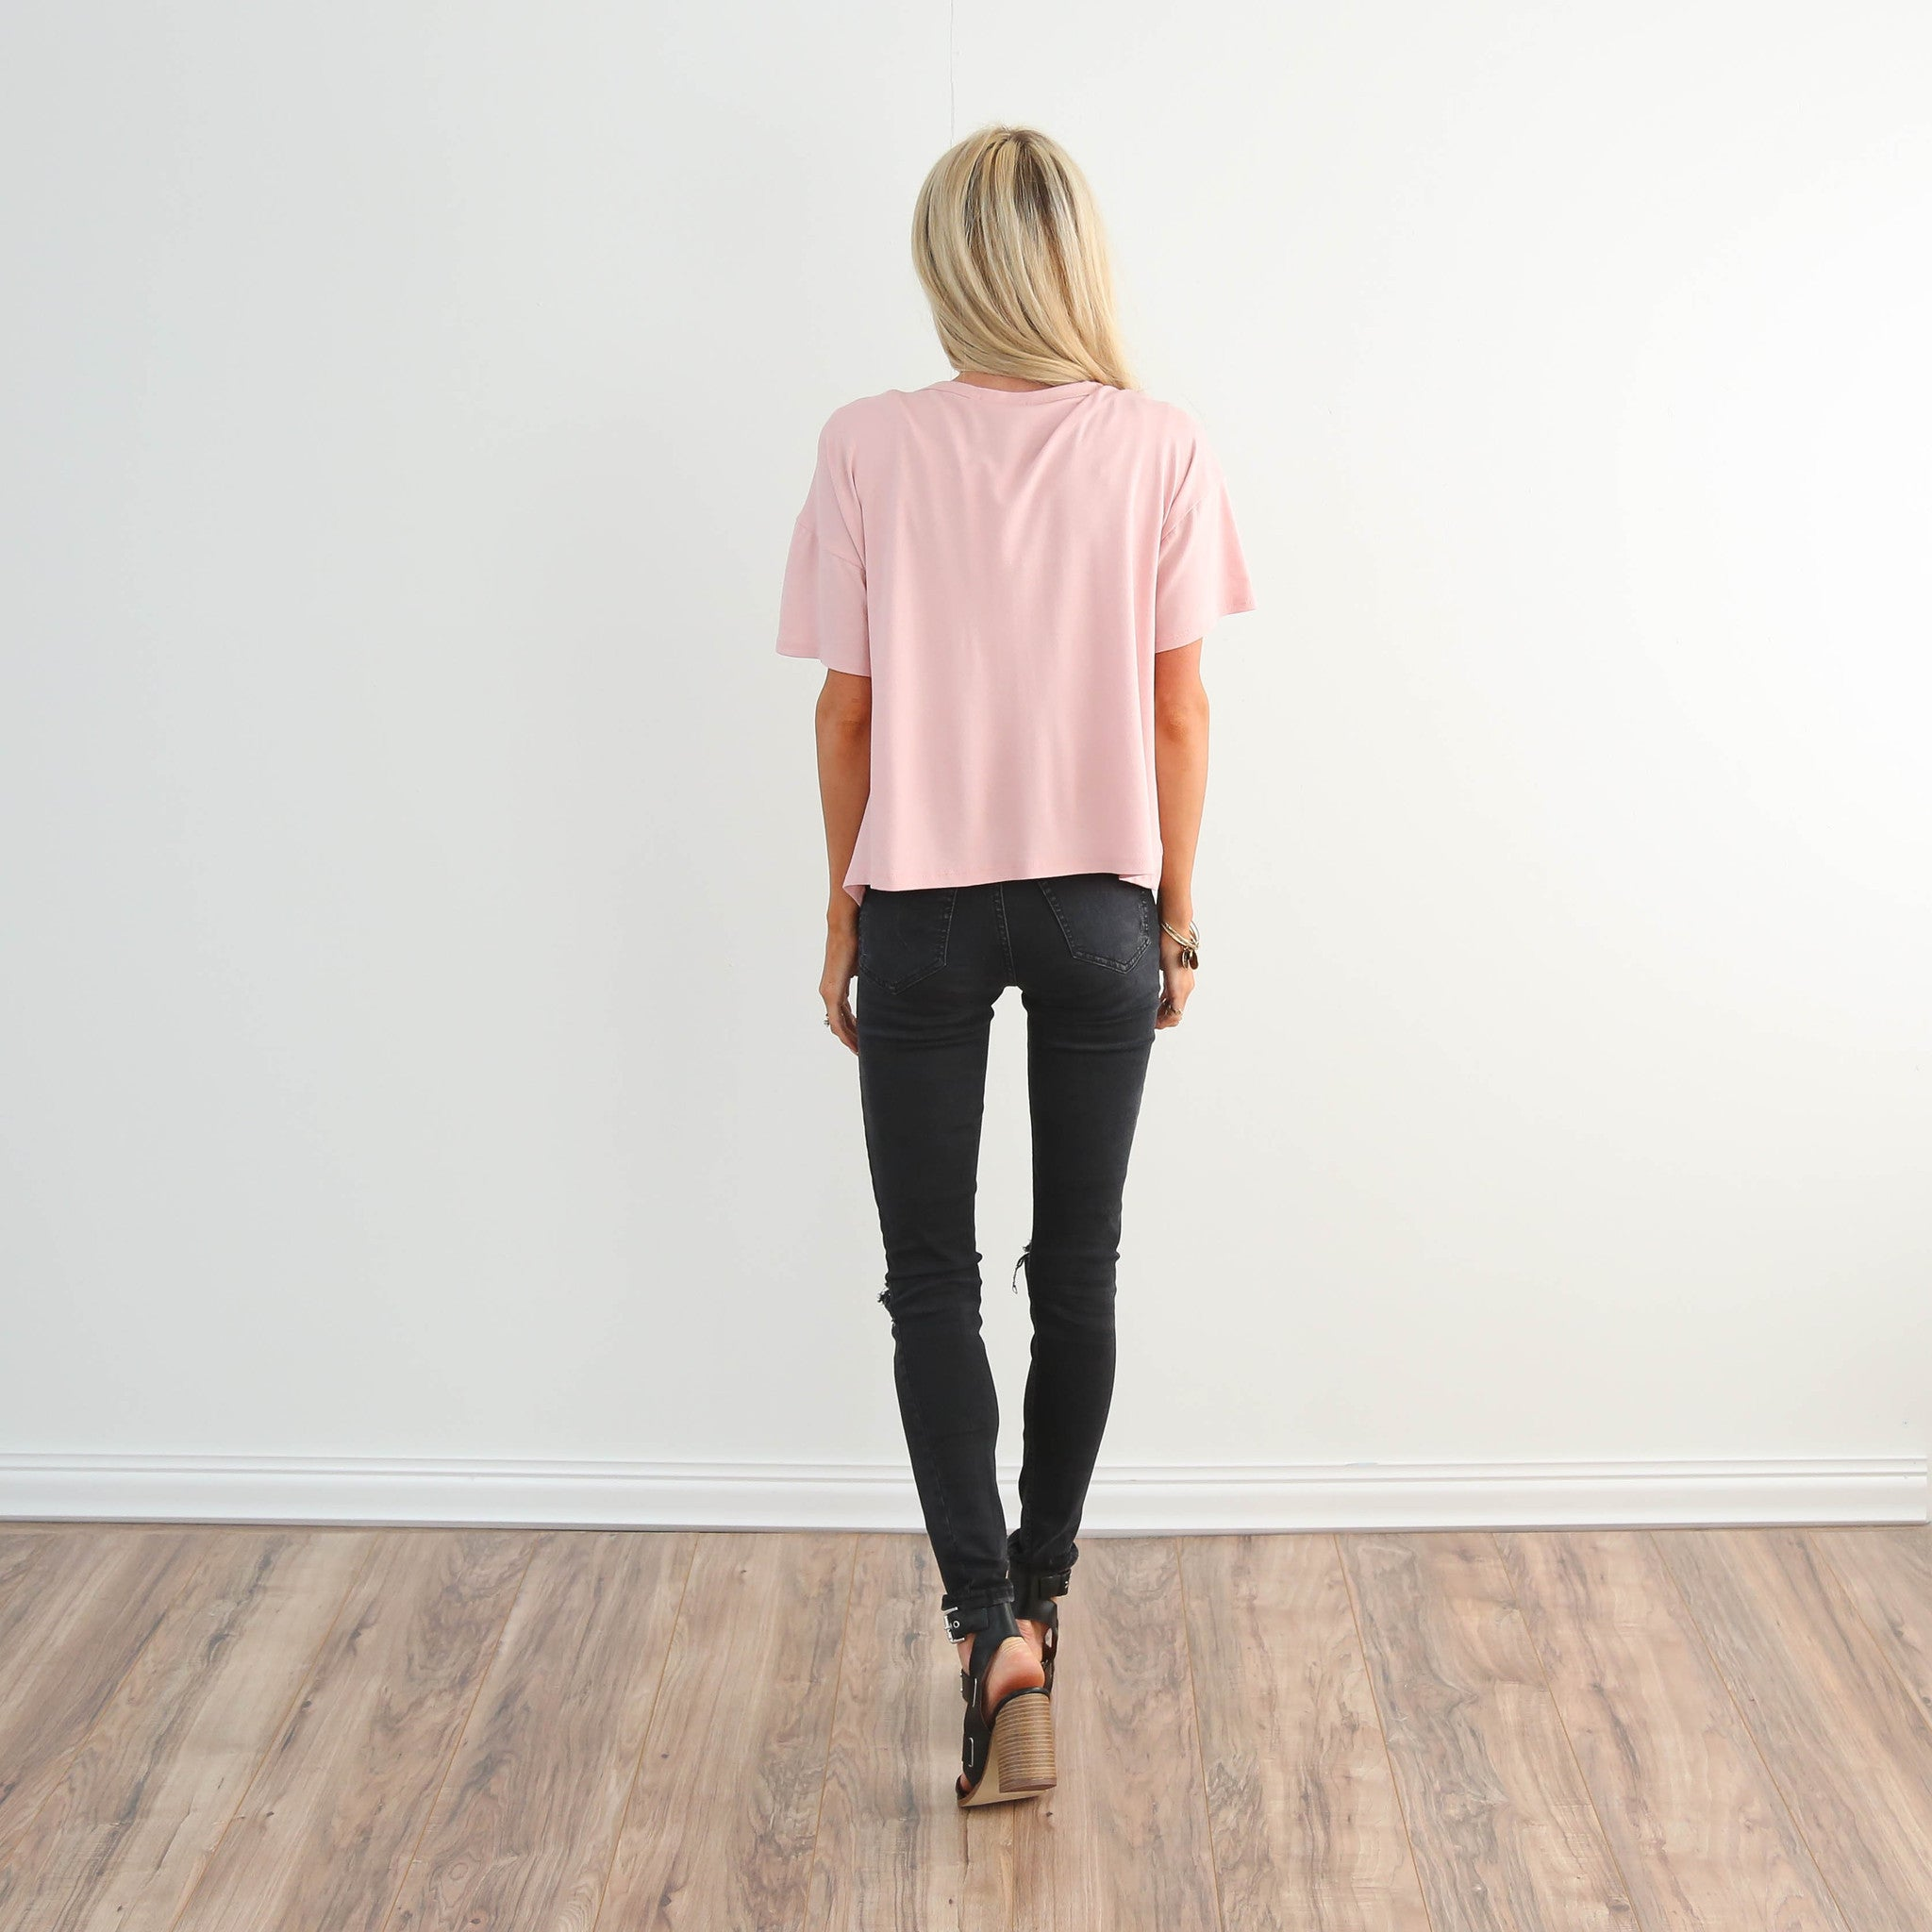 S & Co. Made with Love Top in Pink